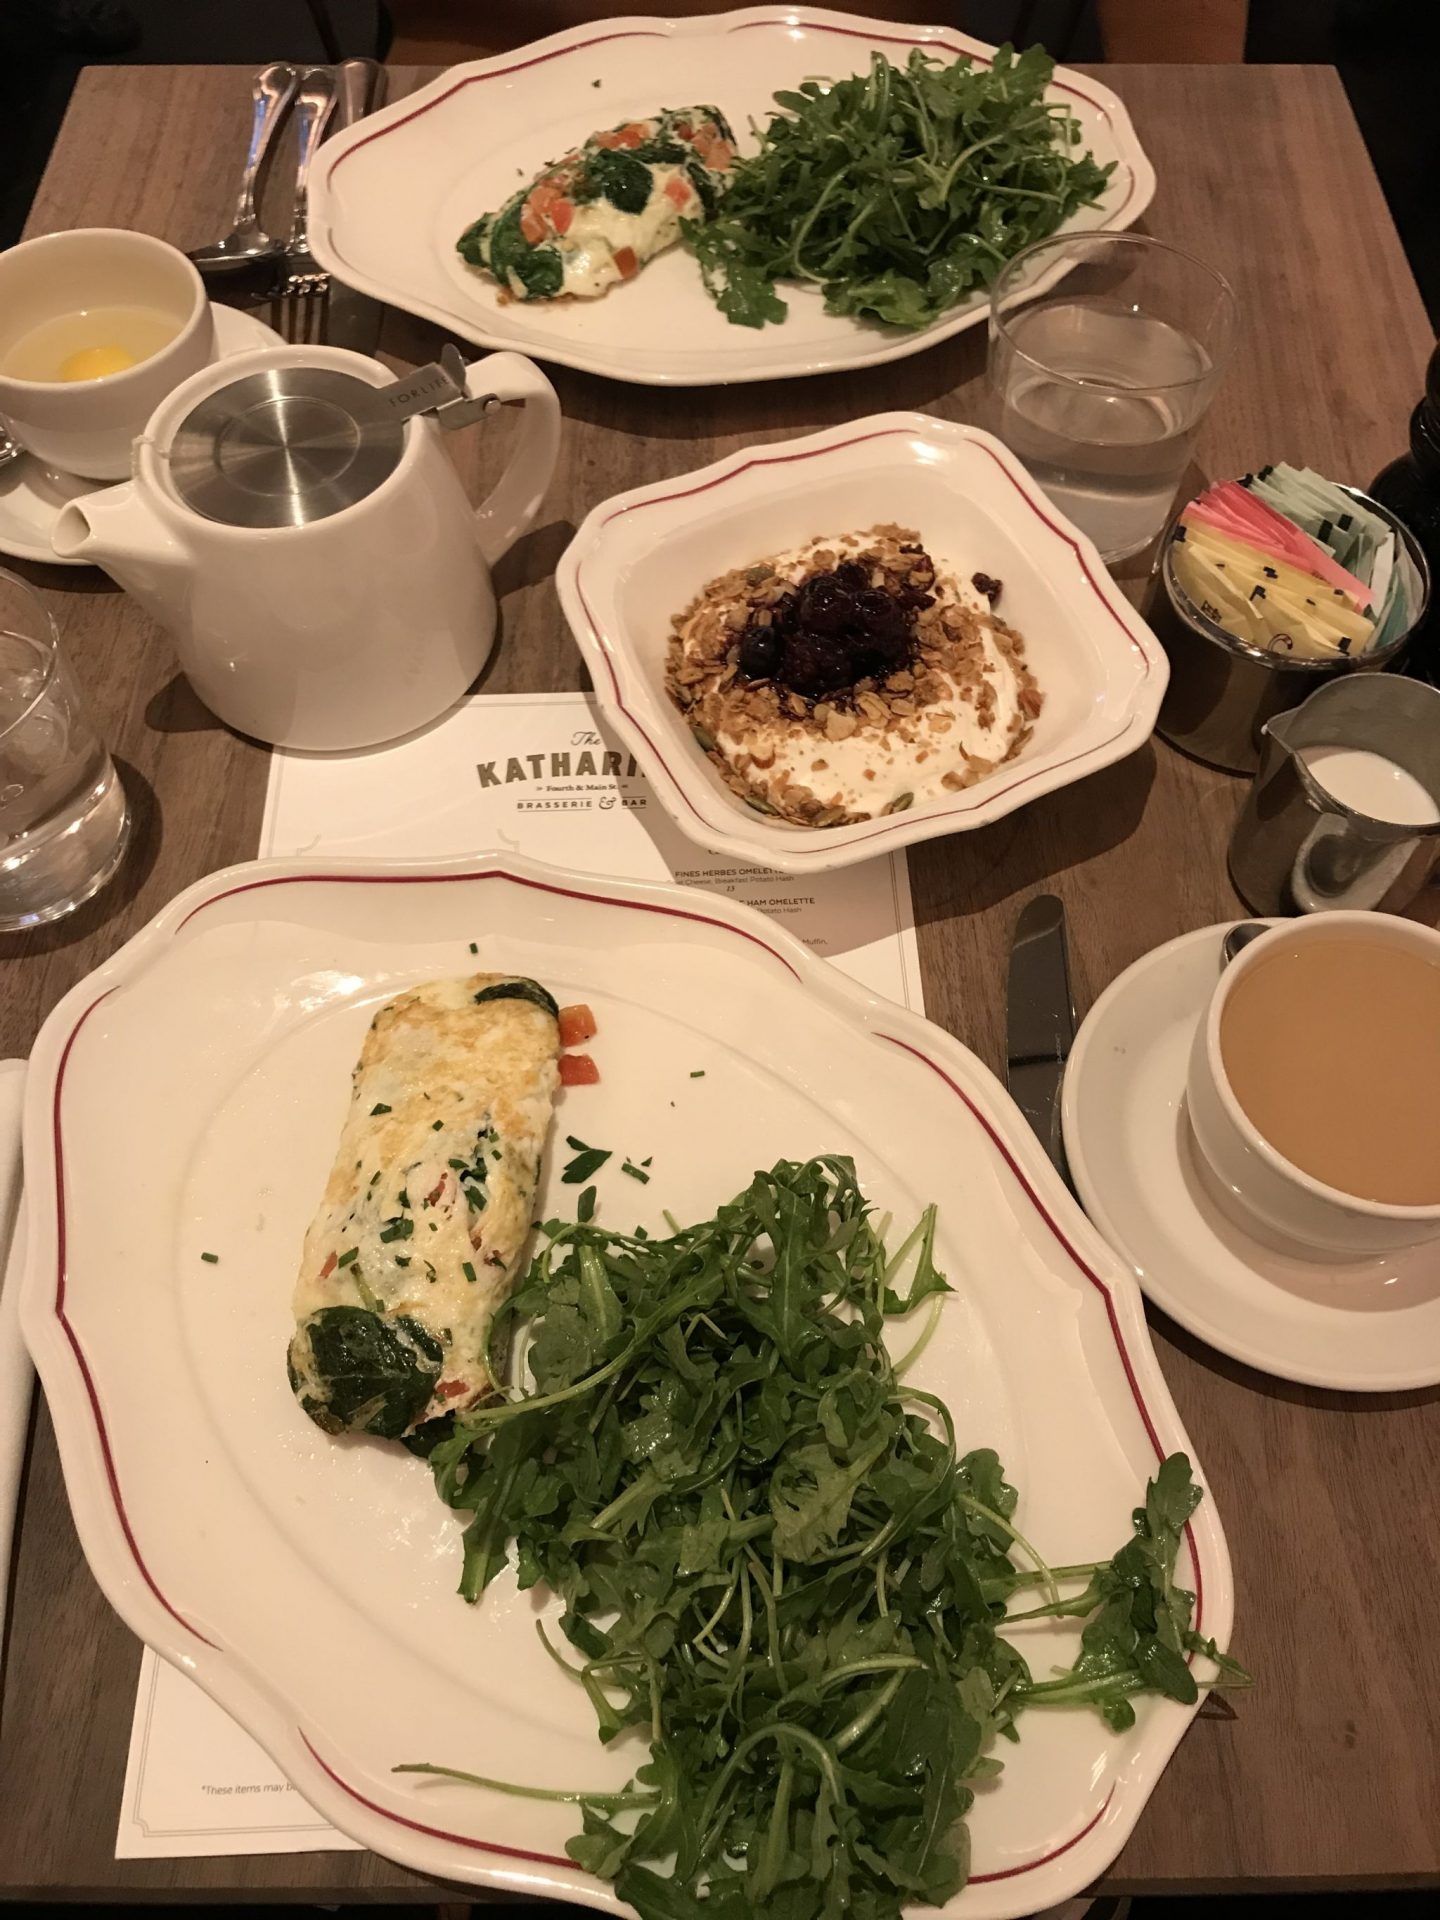 The Katherine Breakfast - Kimpton Cardinal Hotel - Winston Salem - Lauren Schwaiger Travel Blog